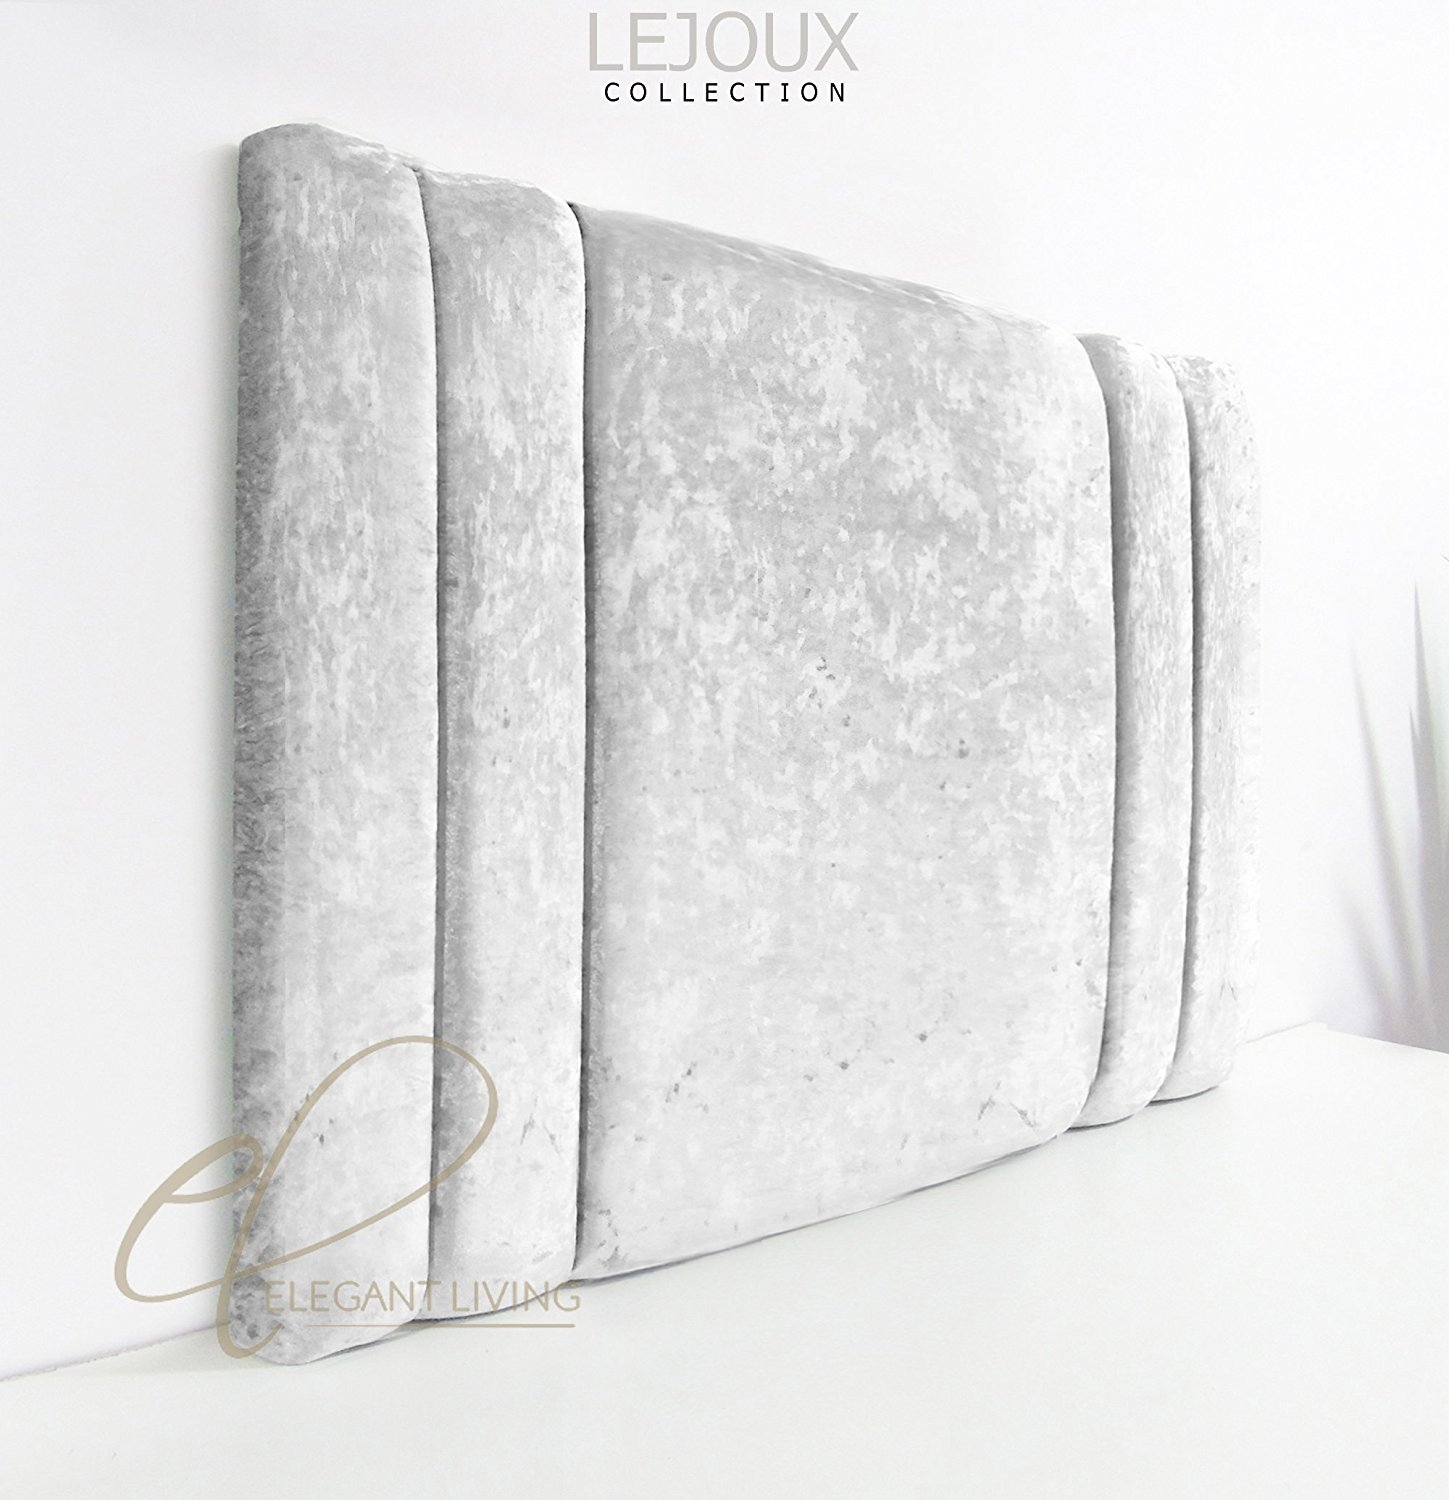 Lejoux™ Collection Normal Luxury Designer Headboard Bed Head in Crushed Velvet in Single Double King (Silver, 3ft (Single) 20 Inches High) Elegant Living Europe Ltd